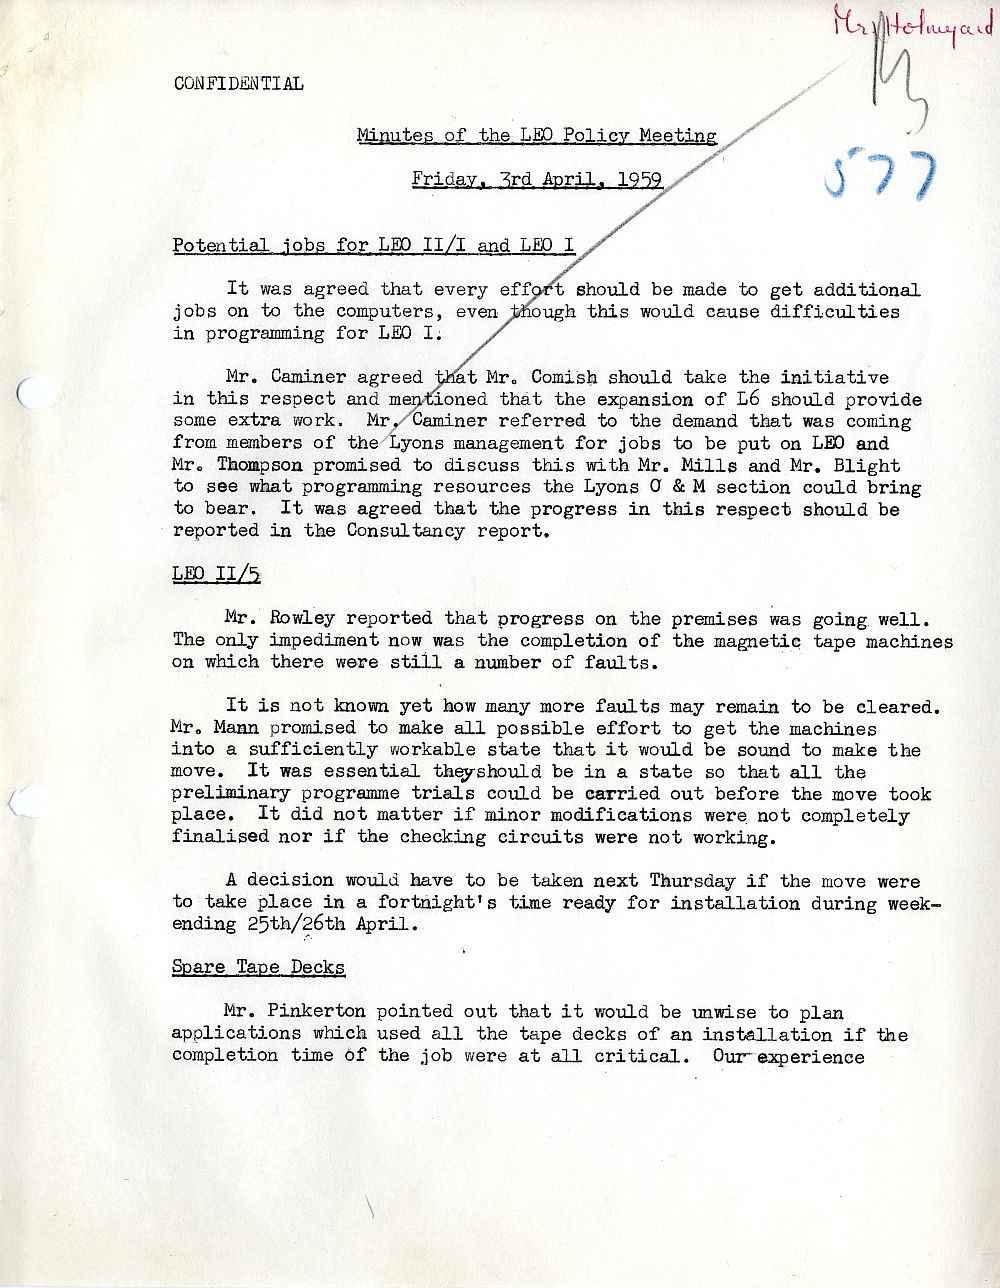 Article: 54585 LEO Policy Meeting, 3/4/1959